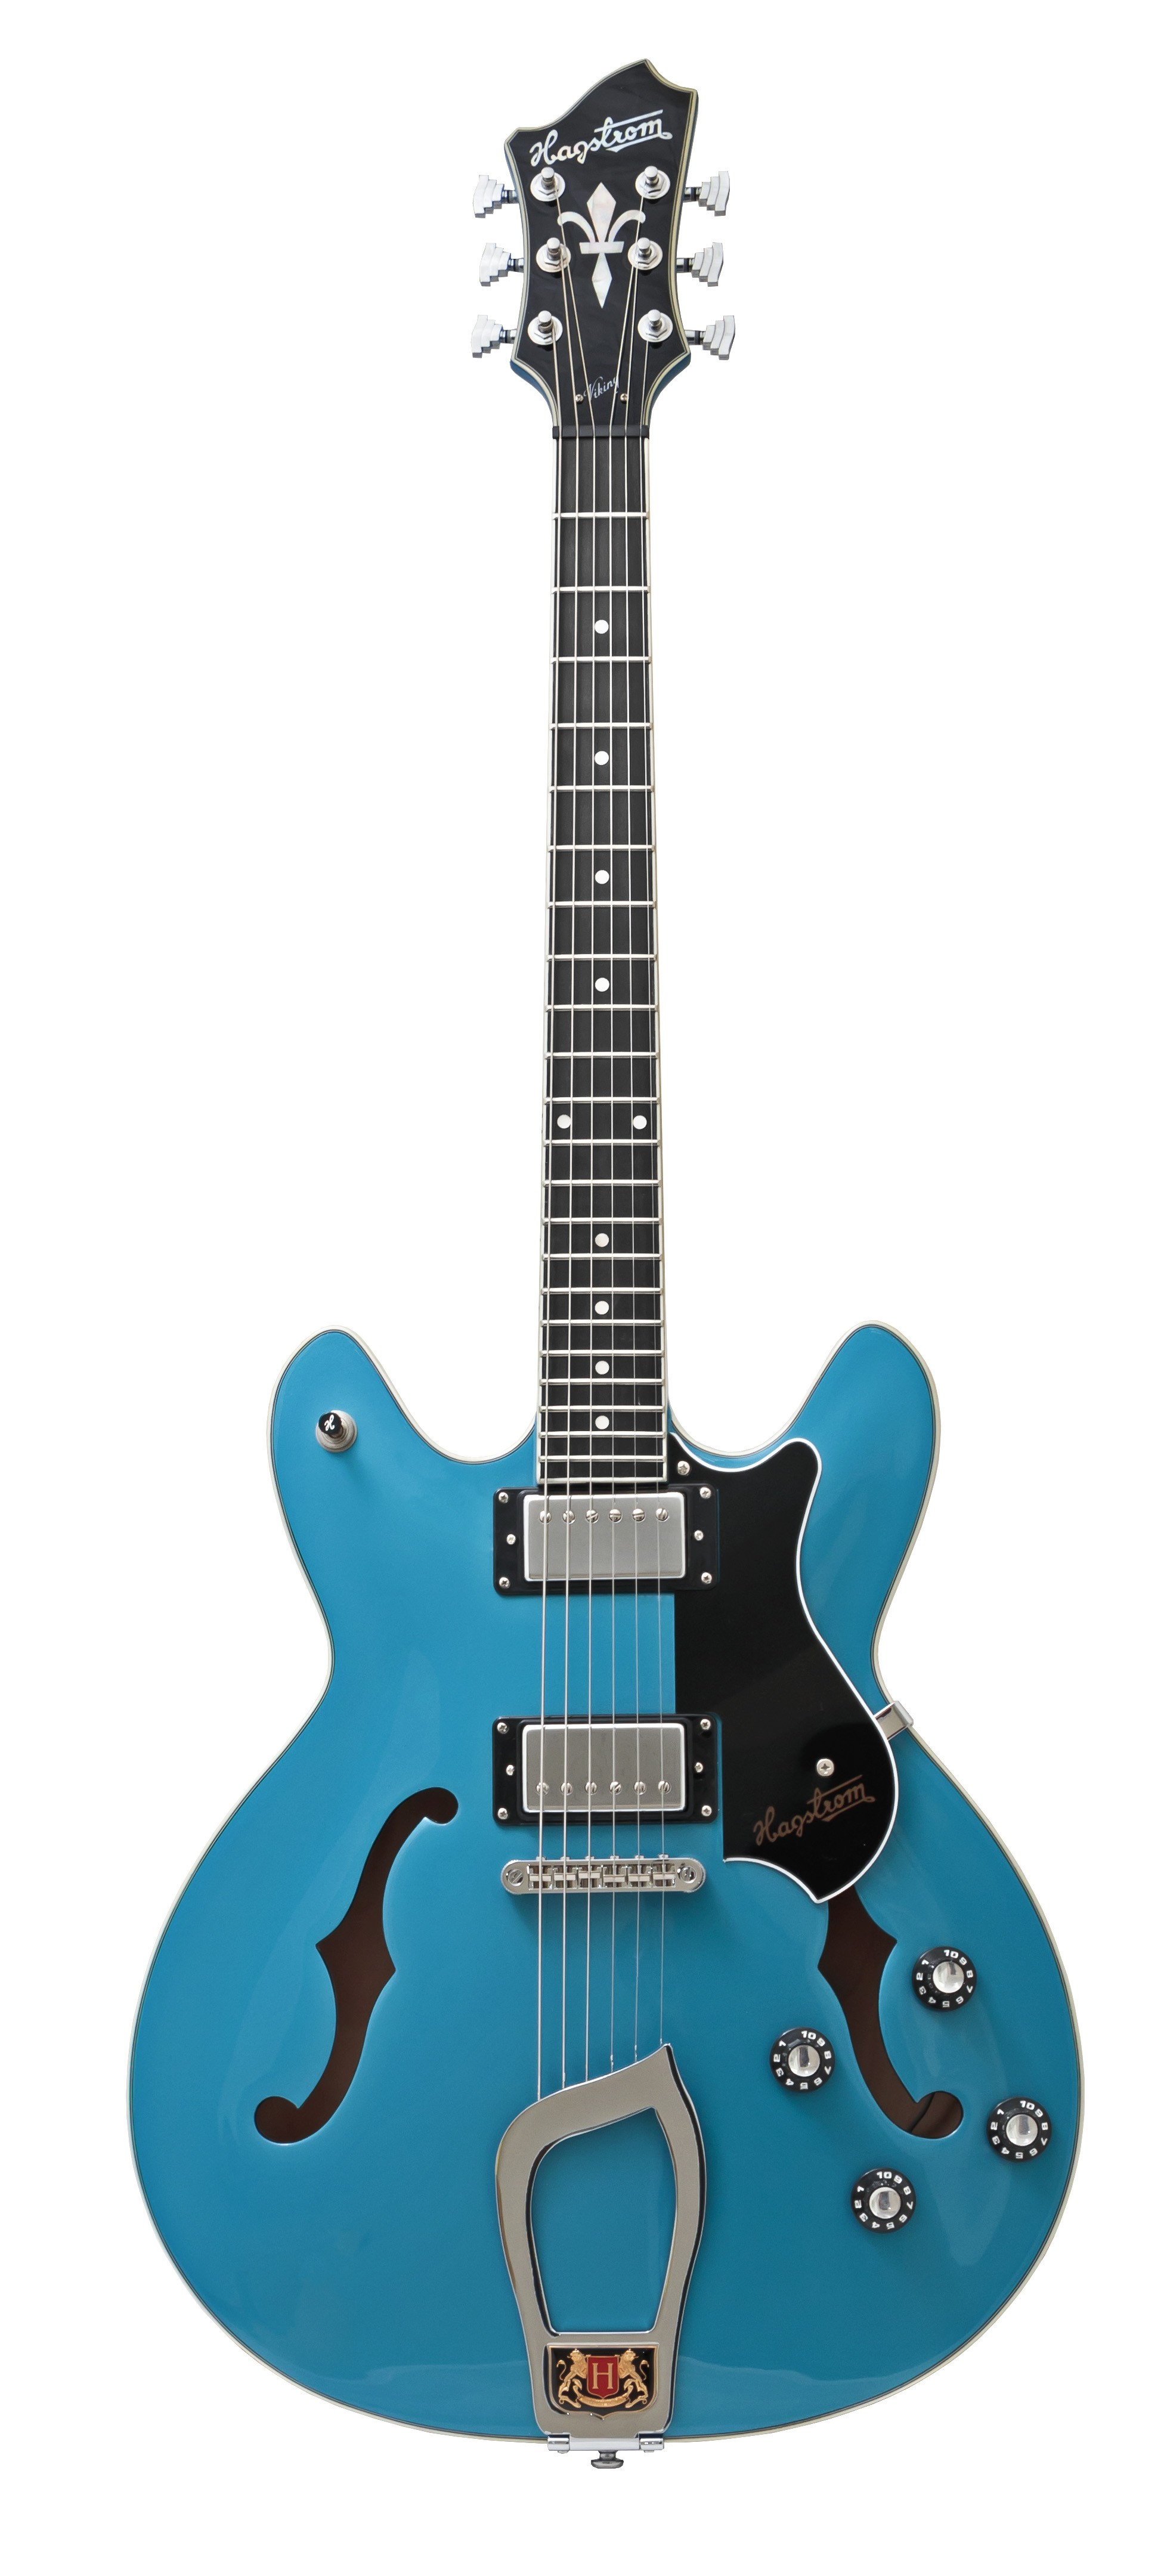 Hagstrom Viking - Limited Edition Miami Blue with Case